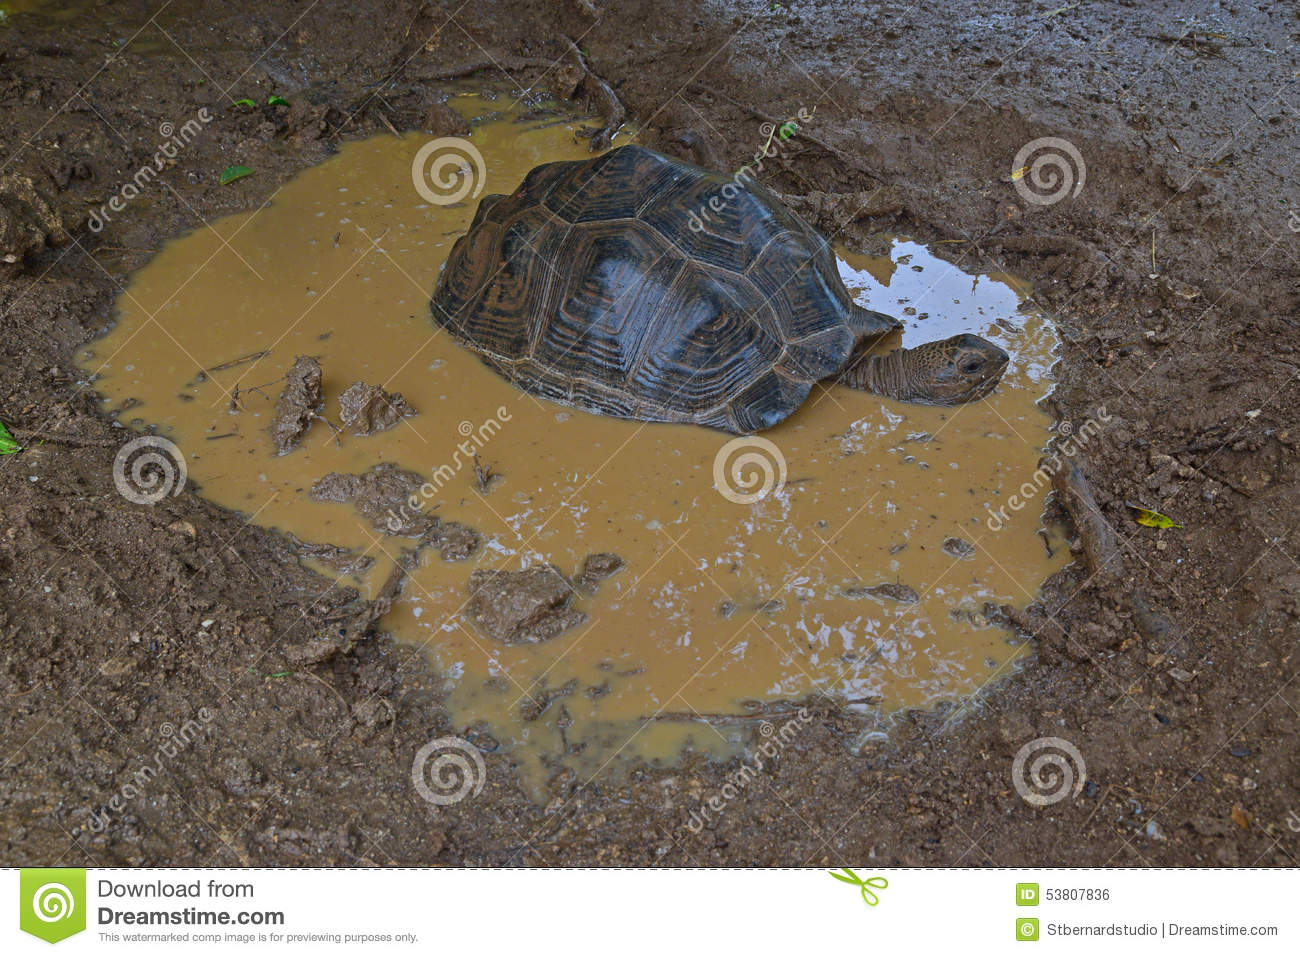 An Aldabra giant tortoise soaking in a puddle of water after a heavy rain